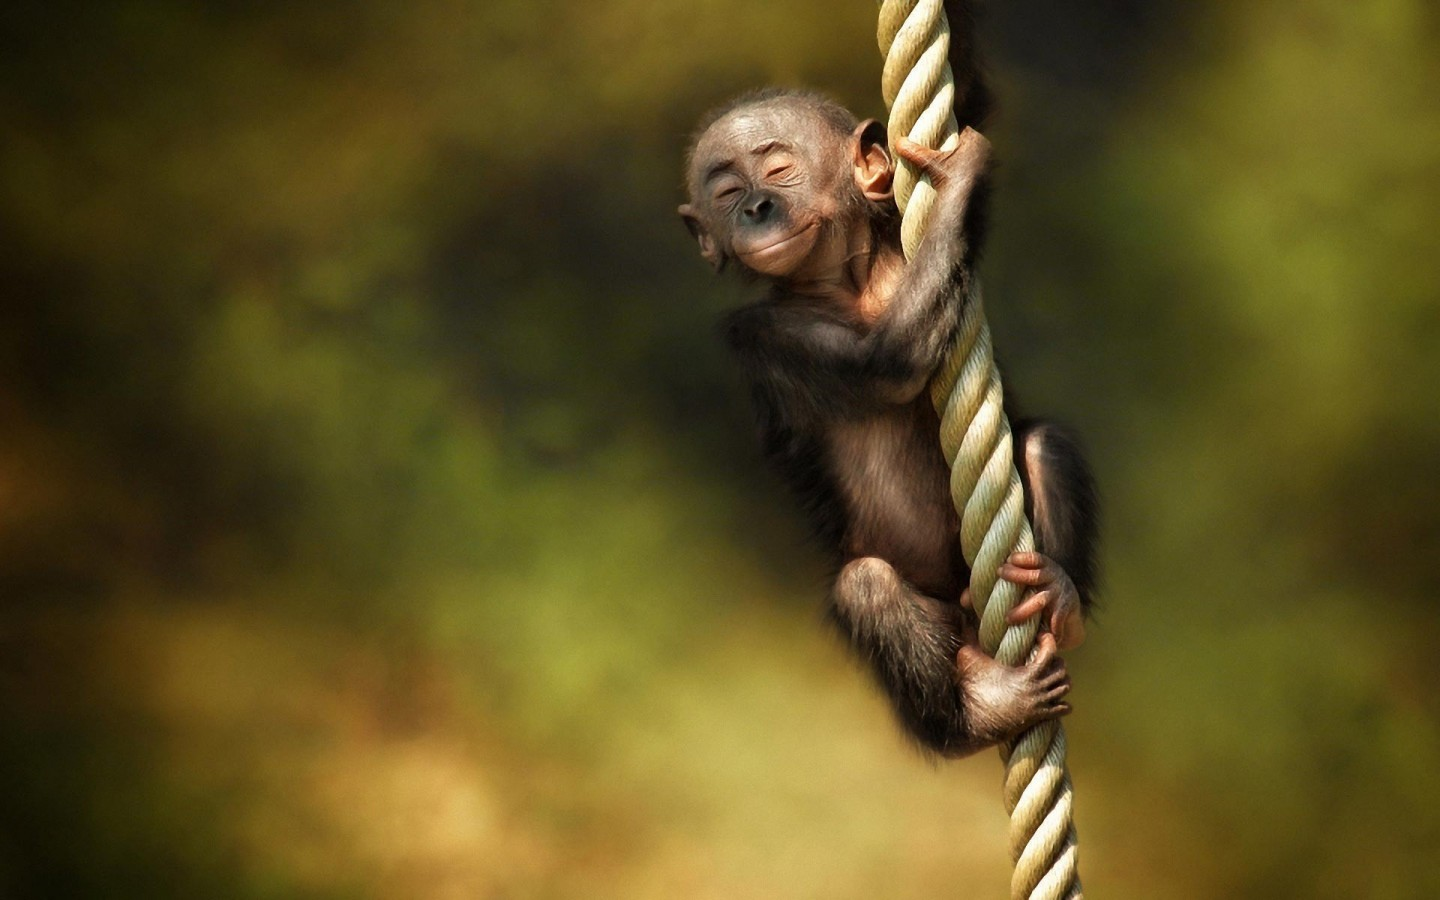 Little Monkey Swing - Little Monkey Swing